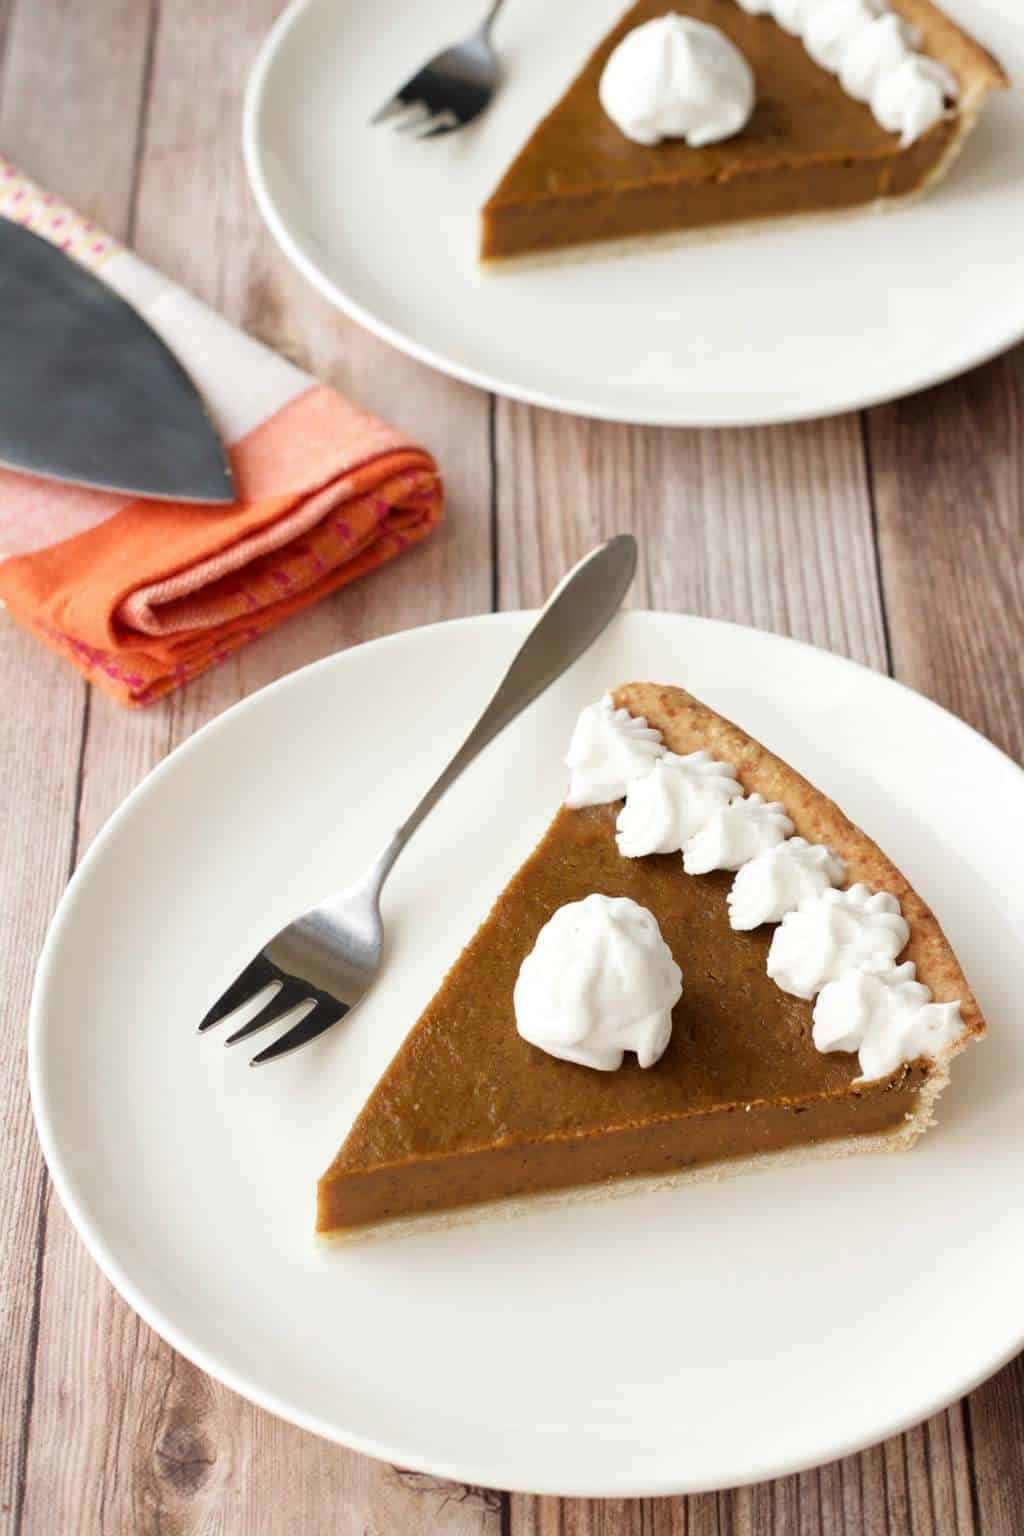 Slices of vegan pumpkin pie on white plates with cake forks.